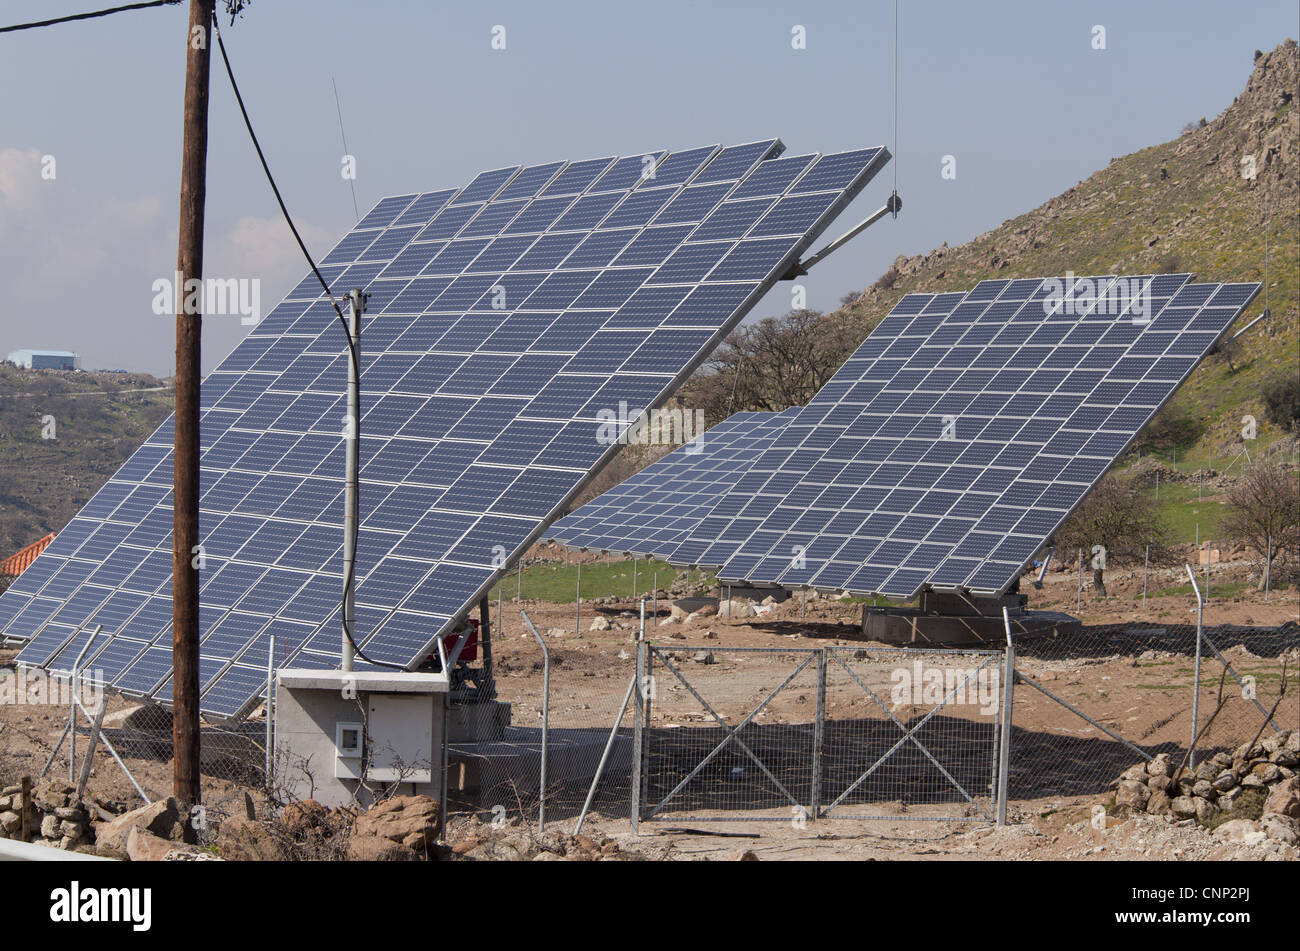 Solar energy panels in countryside, West Lesvos, Greece, march - Stock Image